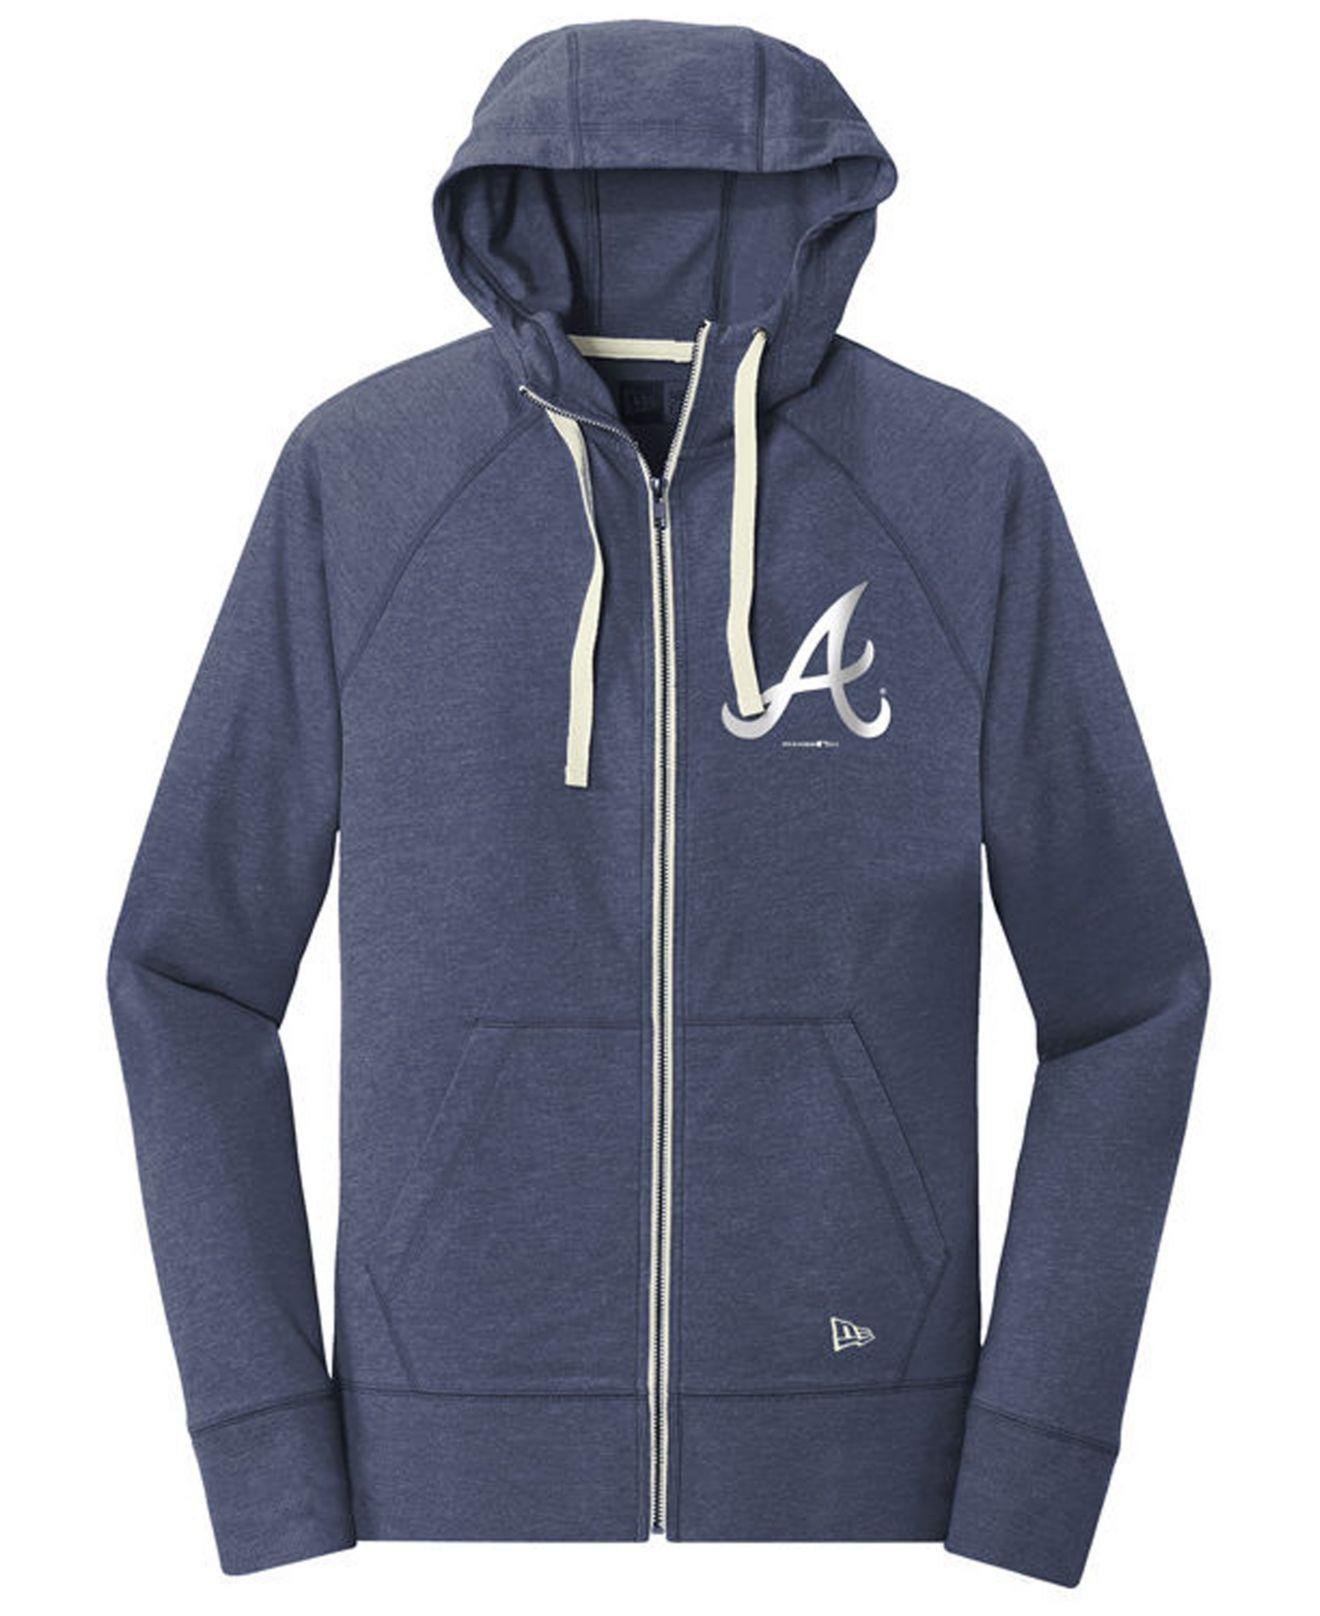 super popular 75e65 0933e Women's Blue Atlanta Braves Triblend Fleece Full-zip Sweatshirt